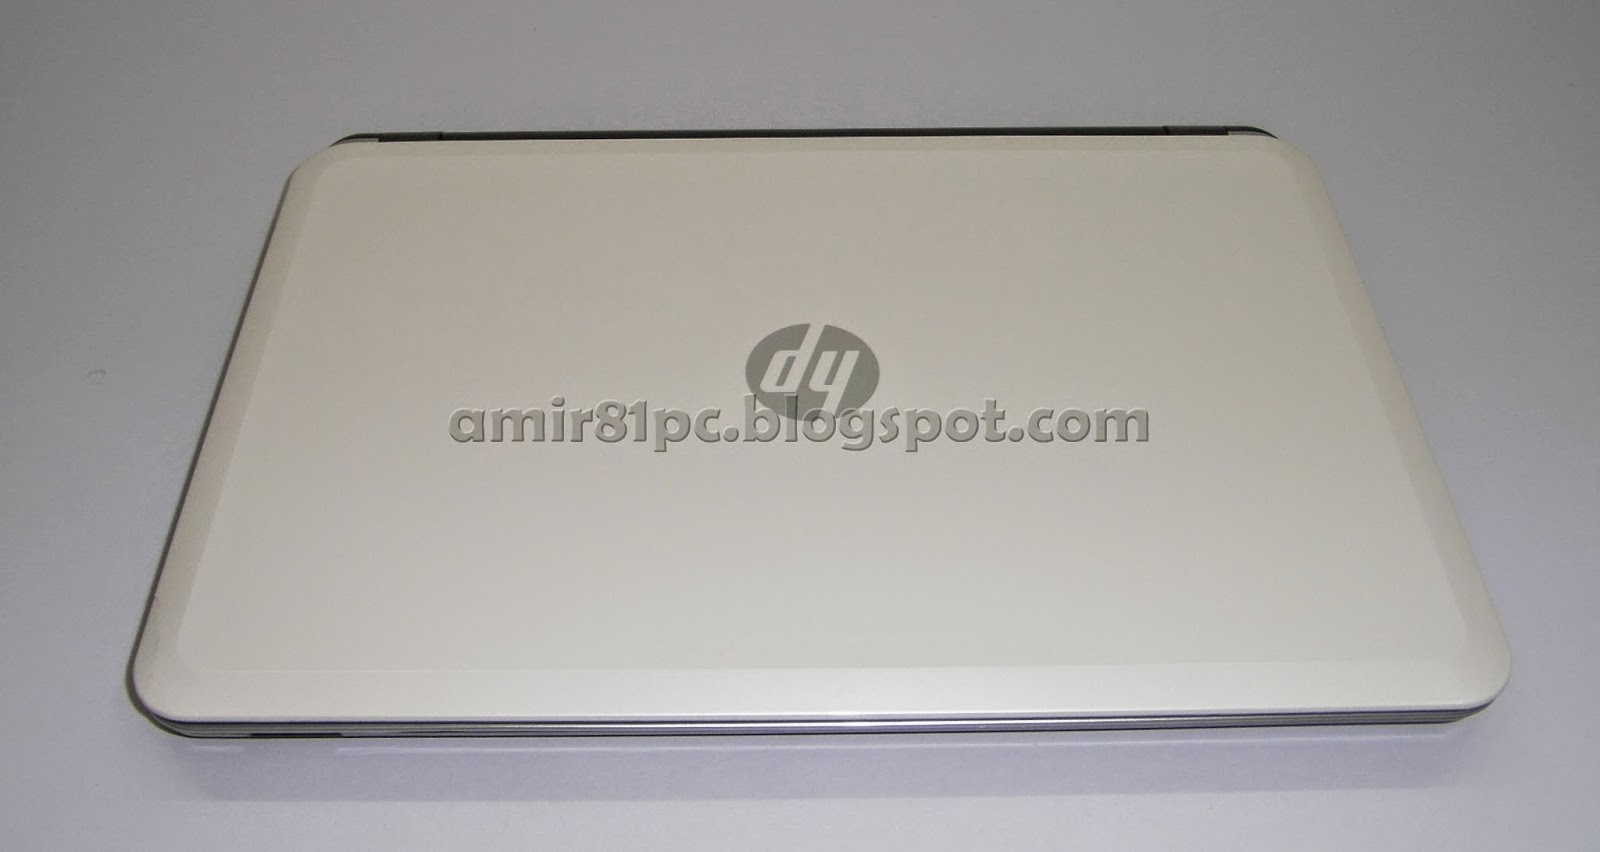 Three A Tech Computer Sales and Services: Used Laptop HP 15-d009TX